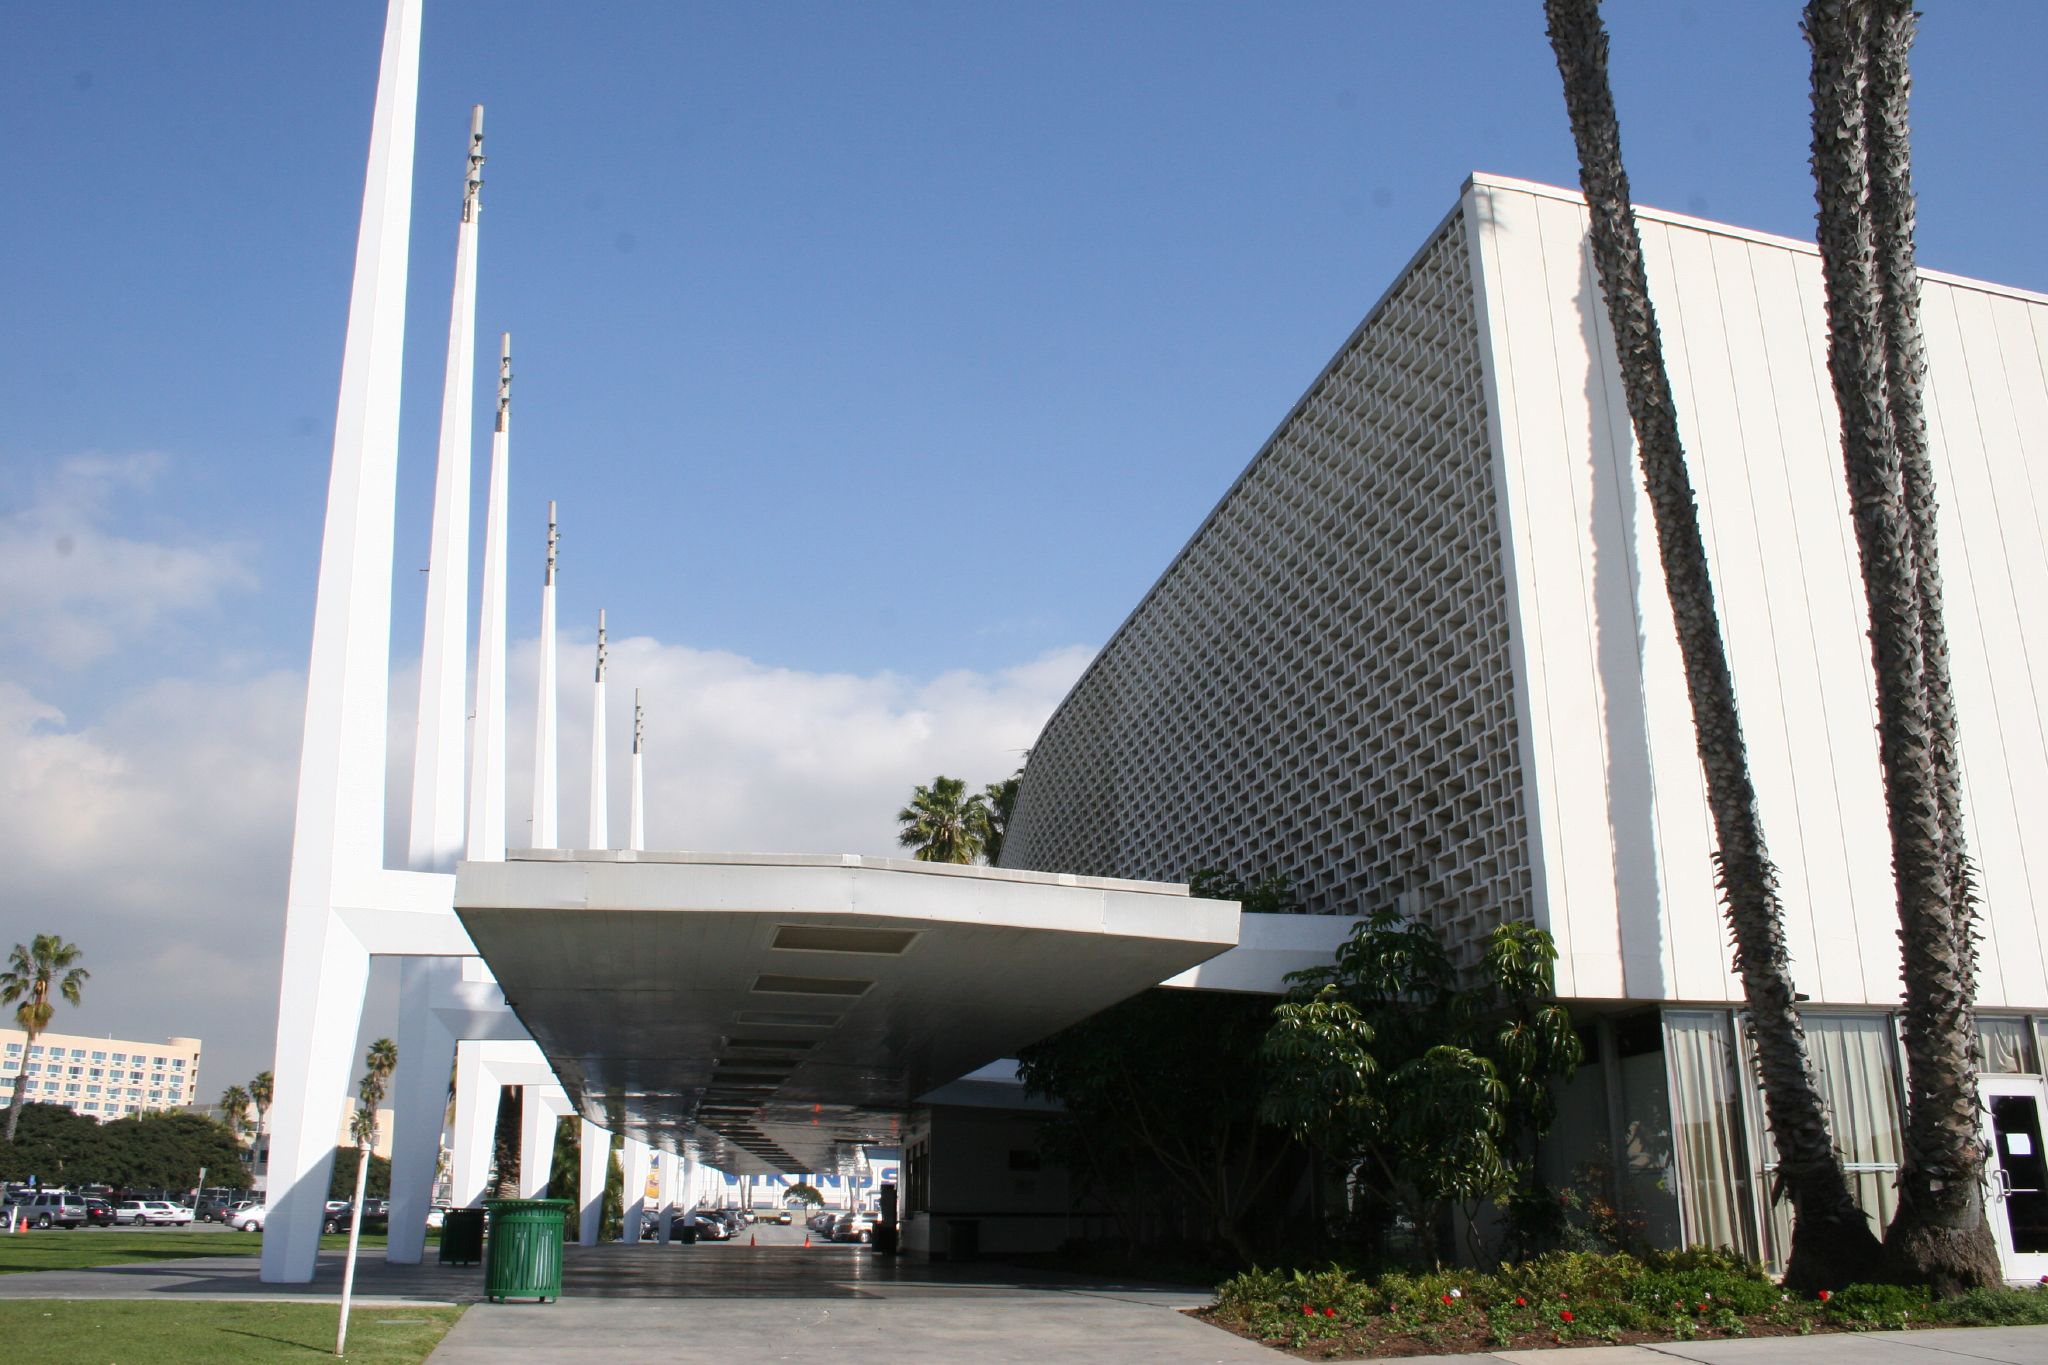 The Santa Monica Civic Auditorium.